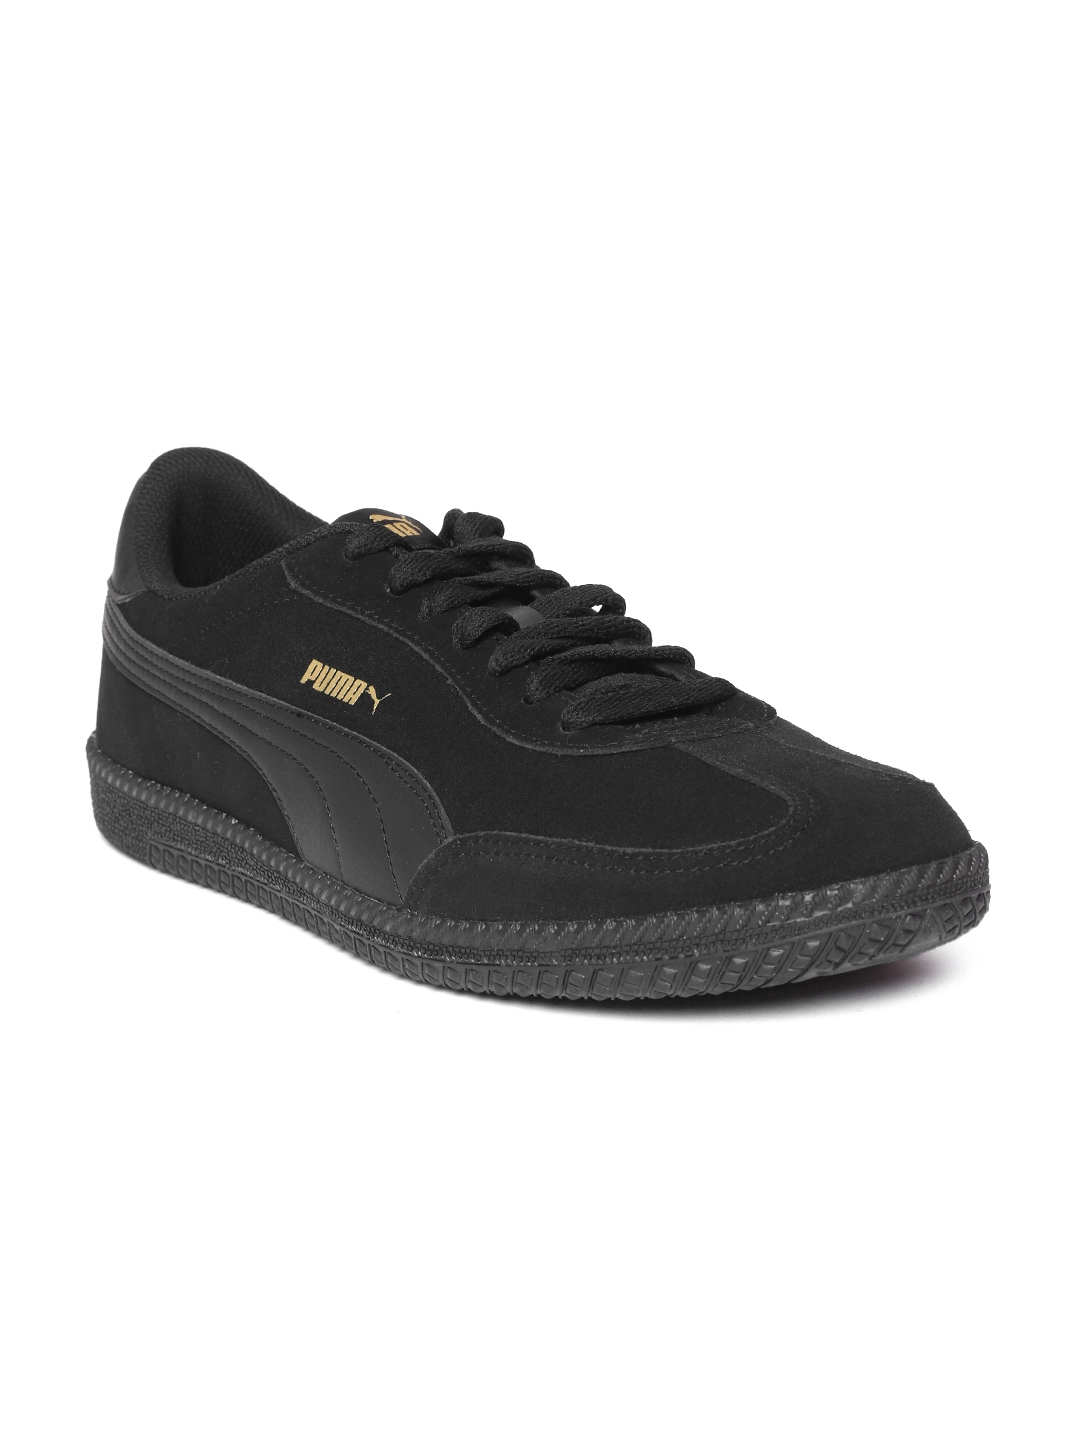 c860df159766 Buy Puma Unisex Black Astro Cup Suede Sneakers - Casual Shoes for ...